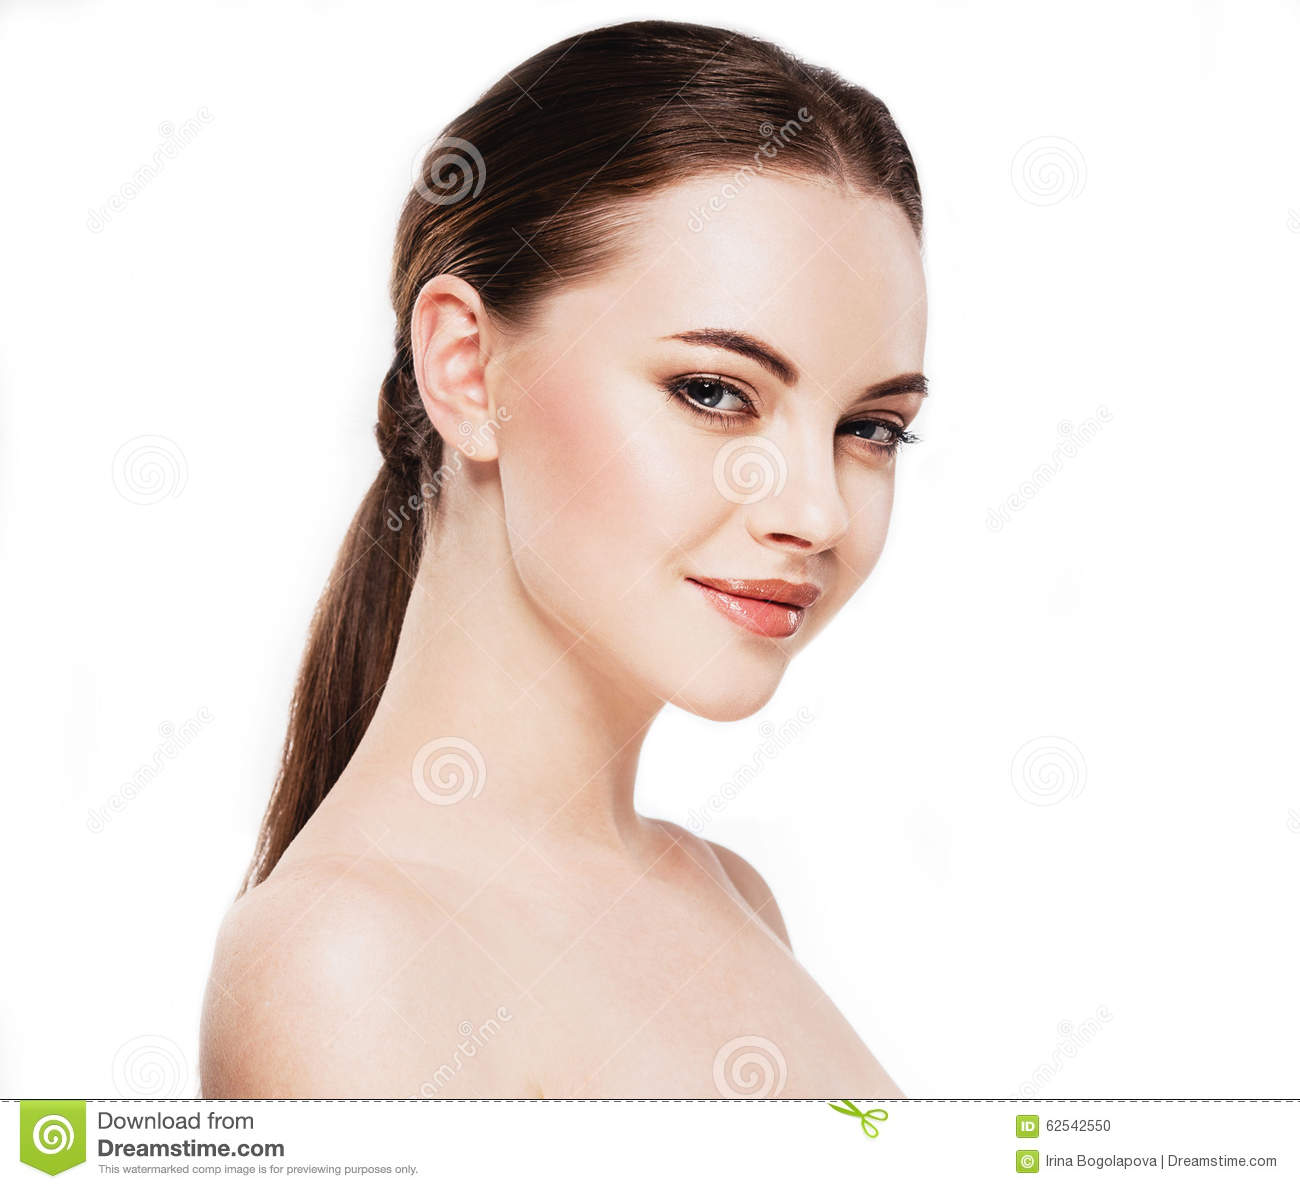 dating a girl with facial hair You may think that you've got a great look down and ladies are impressed by what you've got going on in the facial hair department but you.